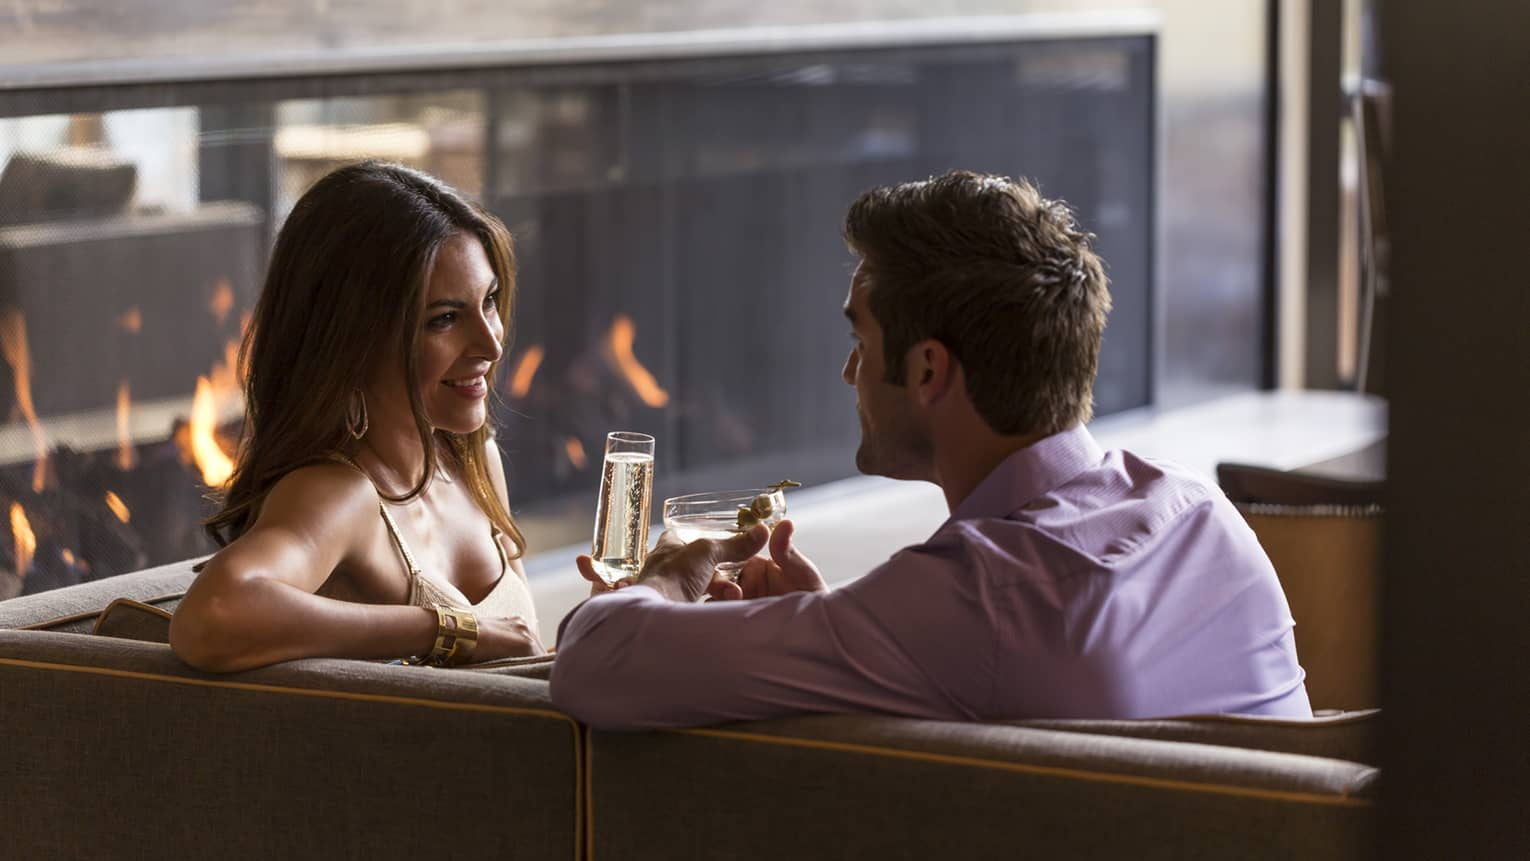 Woman with champagne and man with martini relax on sofa near modern fireplace